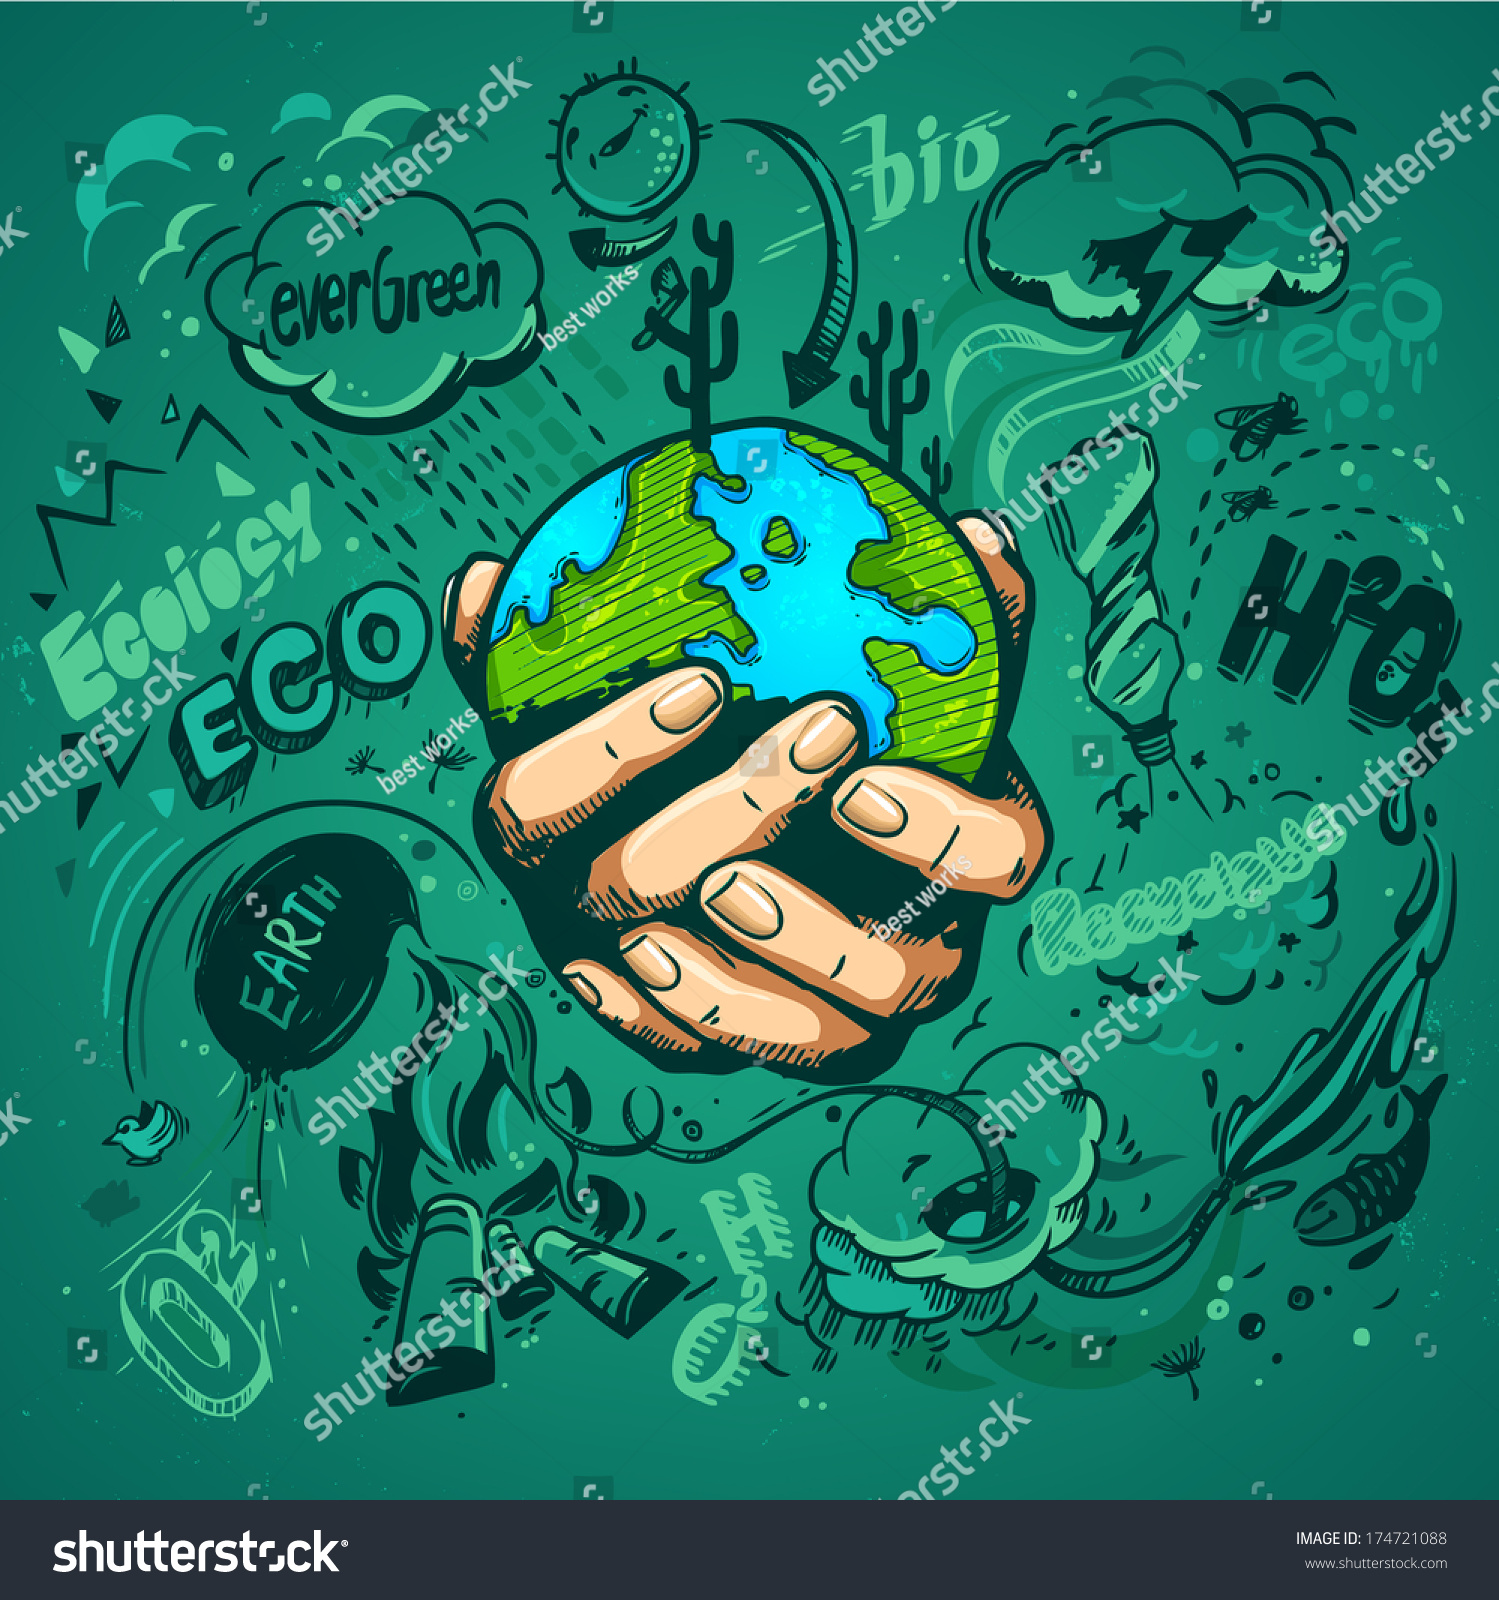 Save the earth from its near